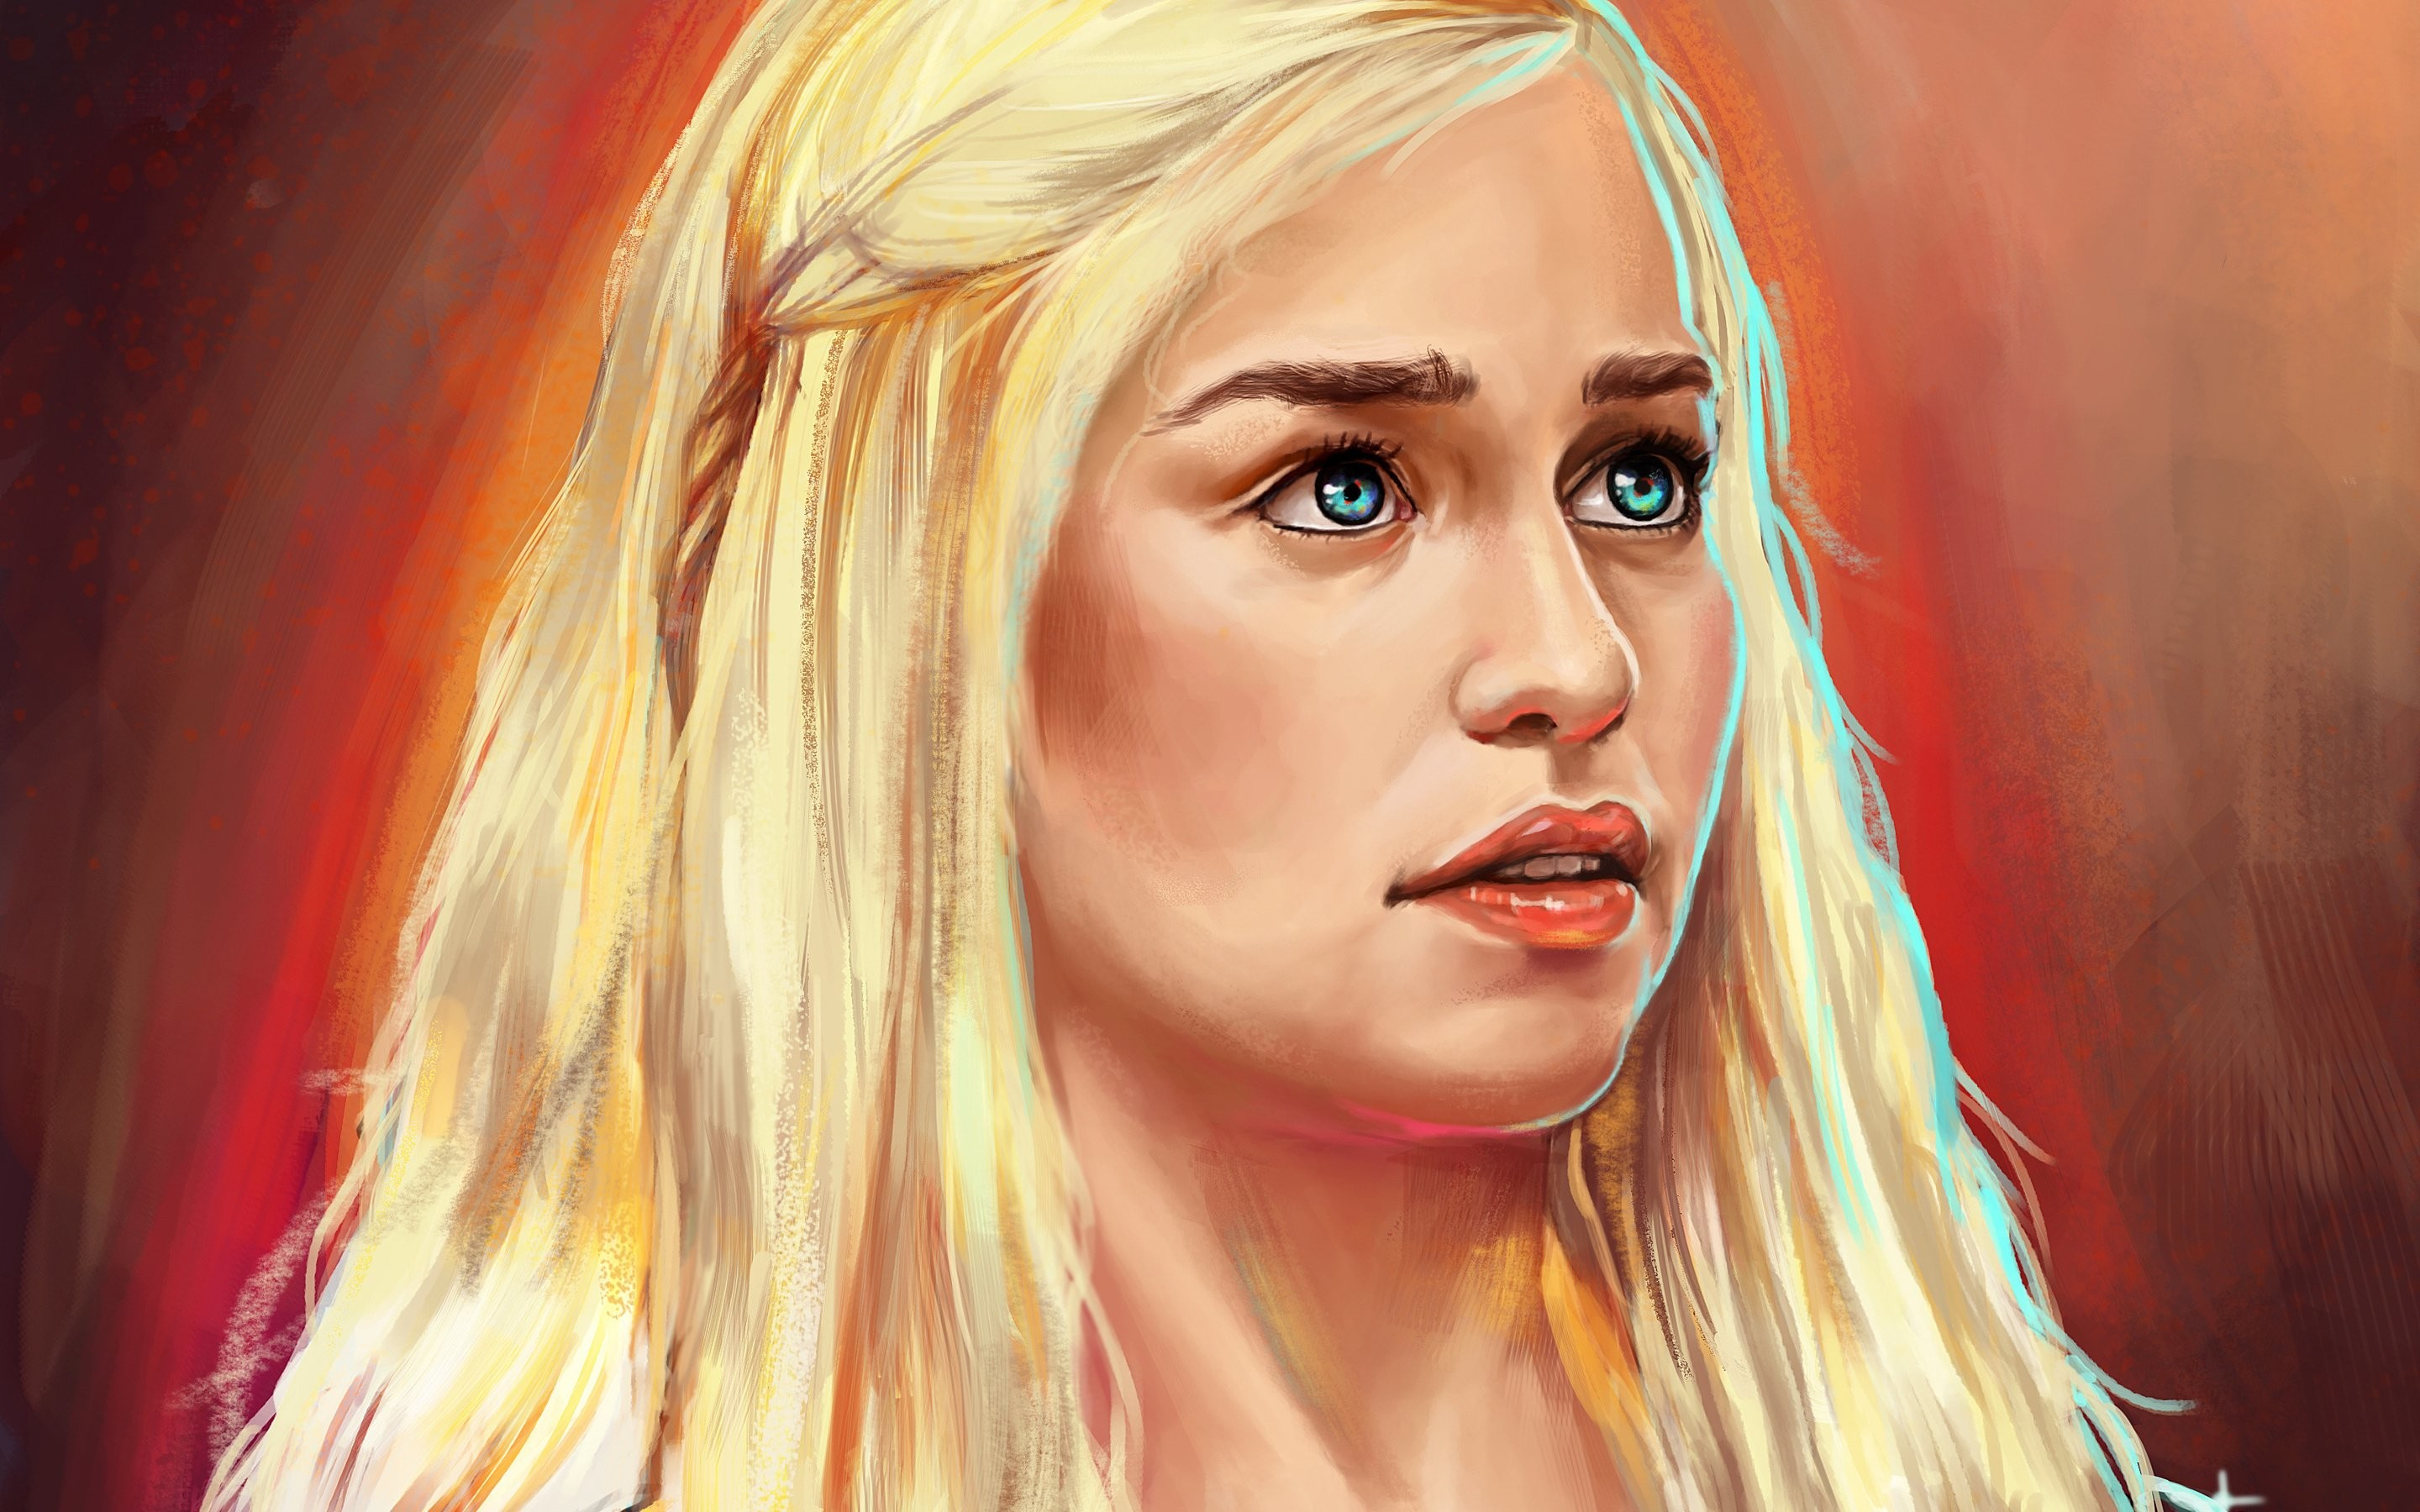 2880x1800 Emilia Clarke Art Blonde Blue Eyes Game Of Thrones Wallpaper At Fantasy  Wallpapers